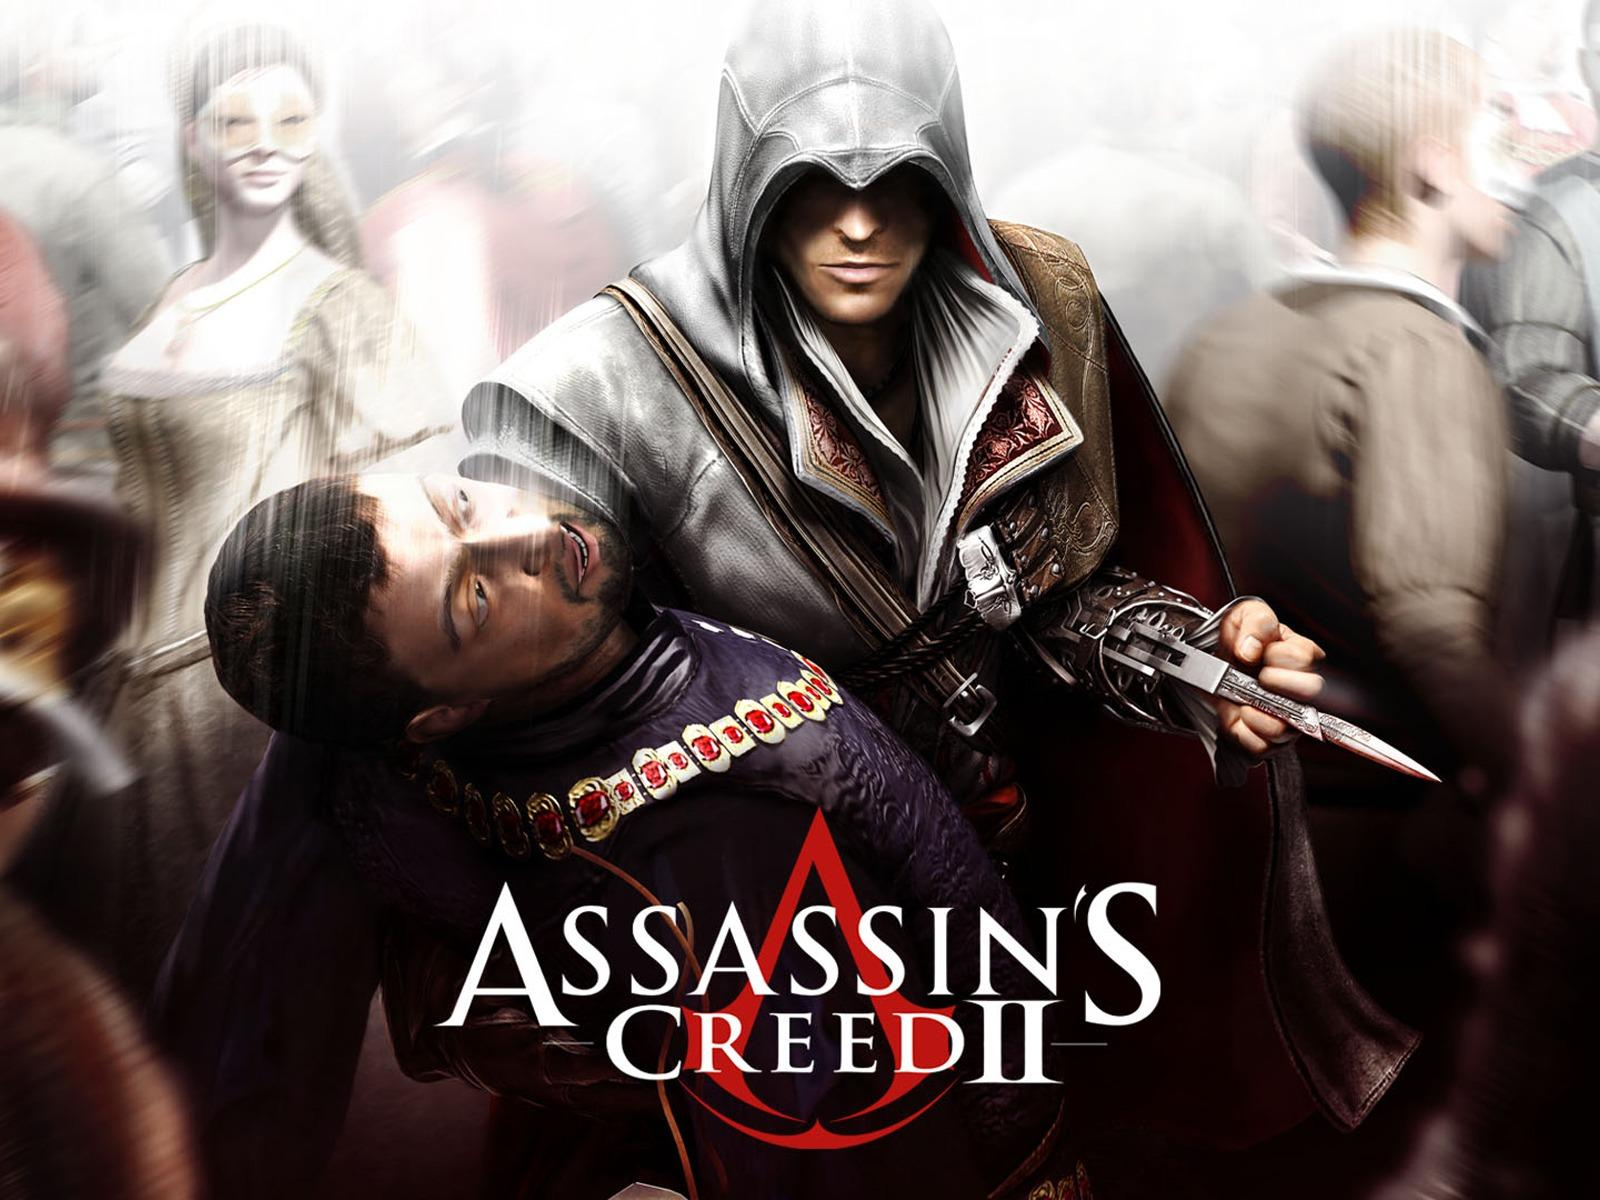 Обои Assassin's Creed 2 1600x1200